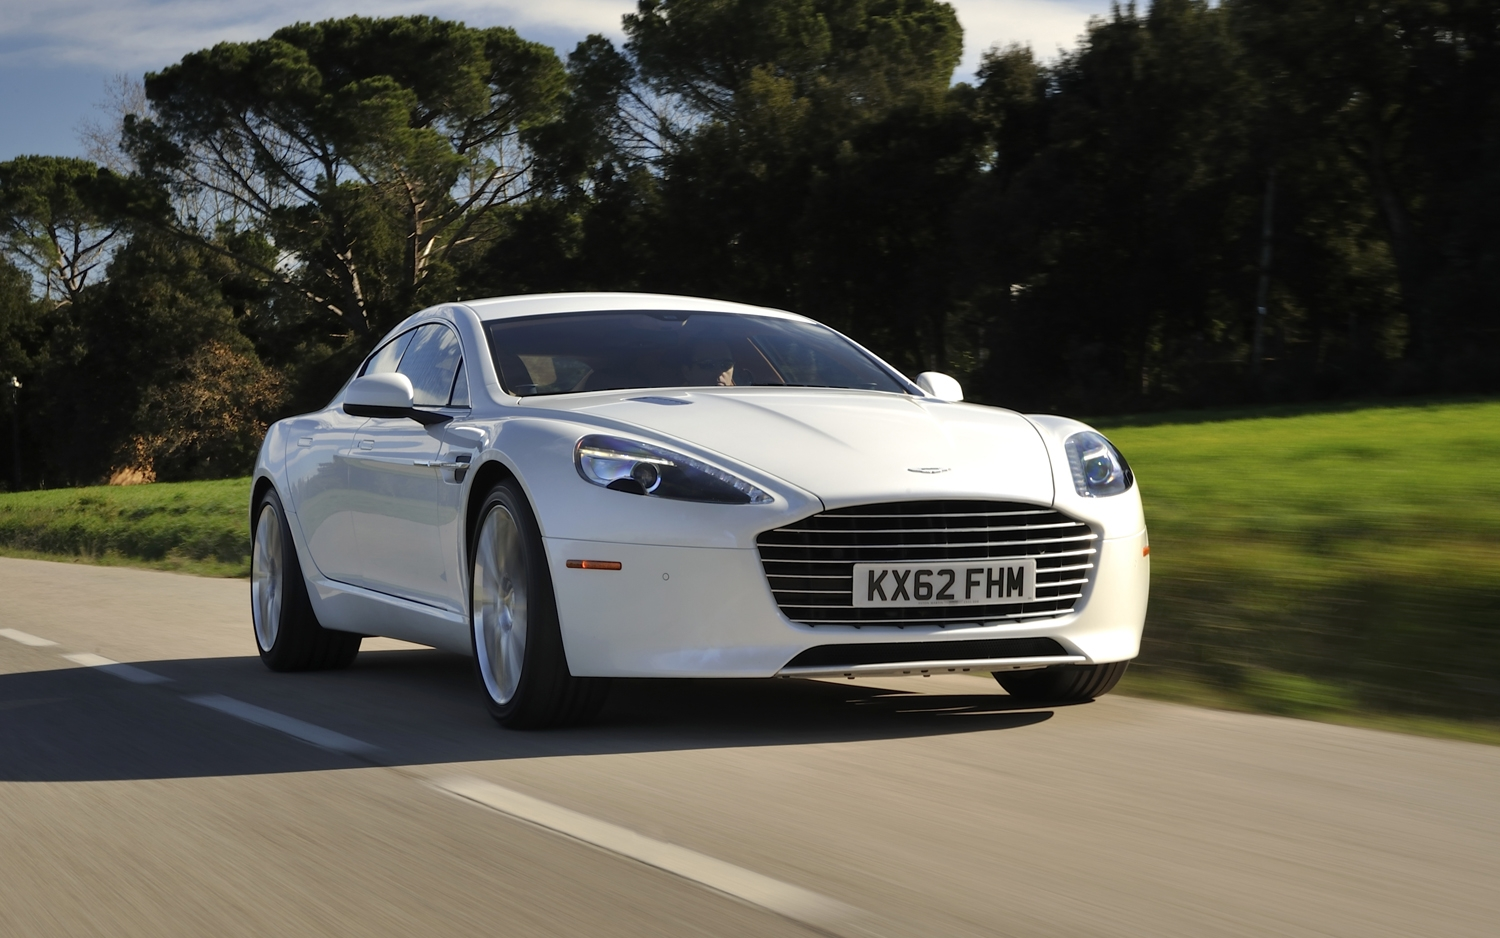 2014 Aston Martin Rapide S photo - 2